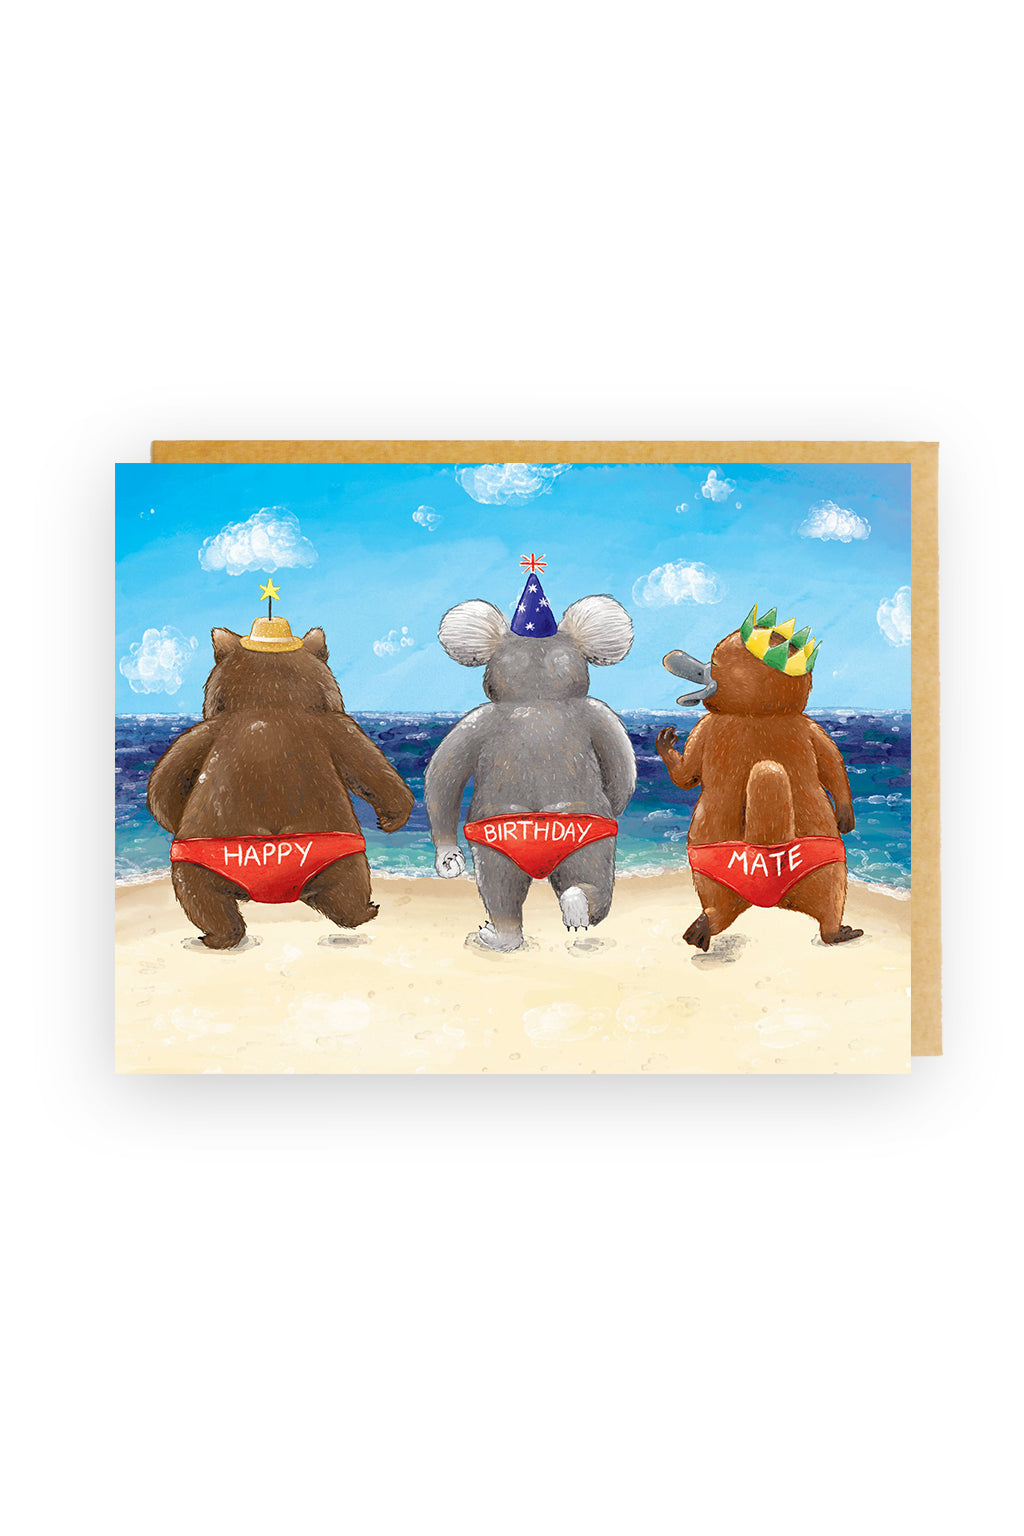 Squirrel Design Studio-Budgie Smugglers - Birthday Card-Mott and Mulberry